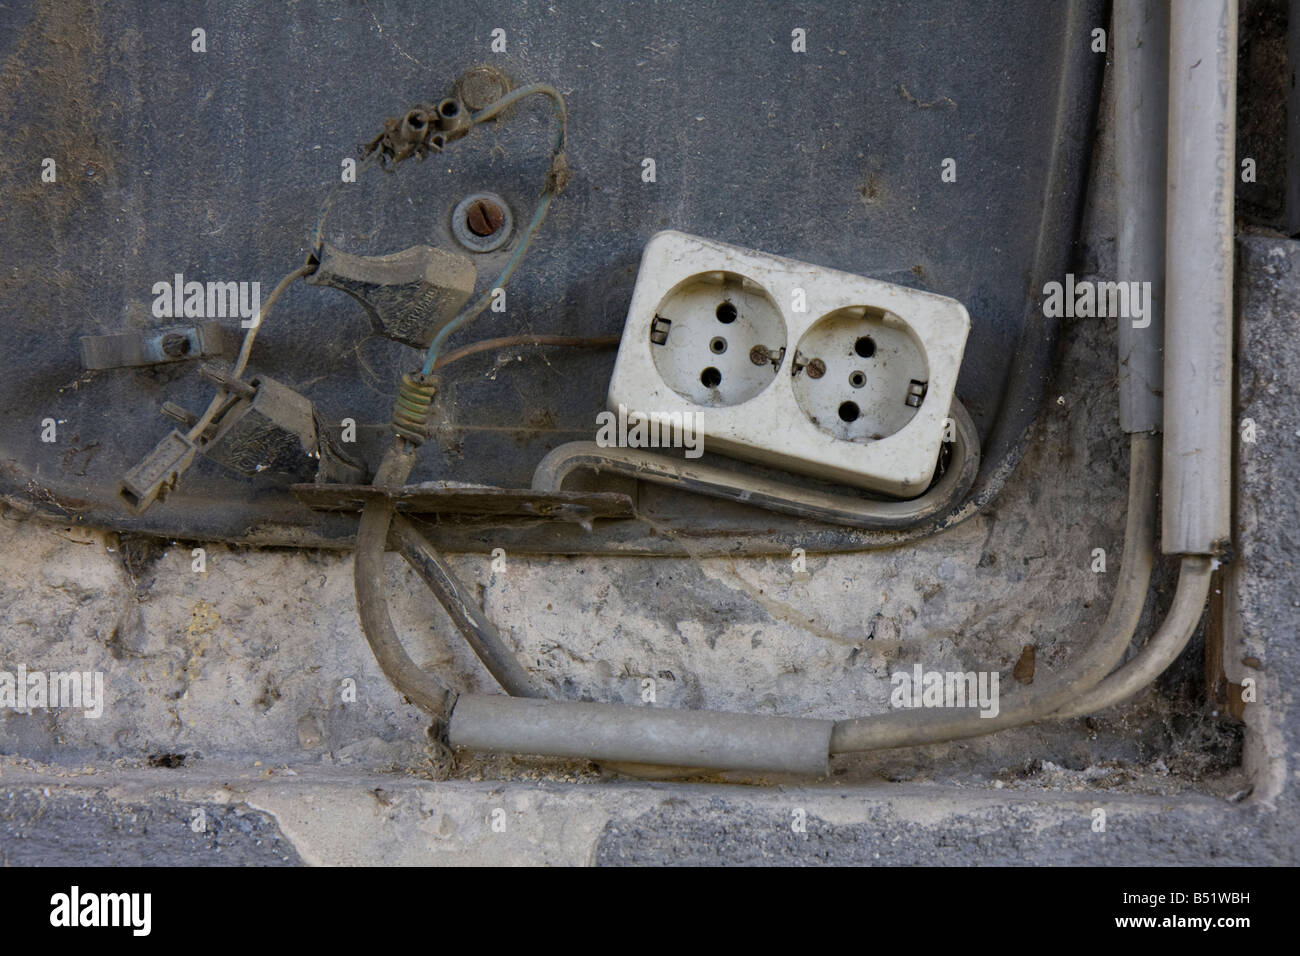 old power outlet Stock Photo: 20325525 - Alamy